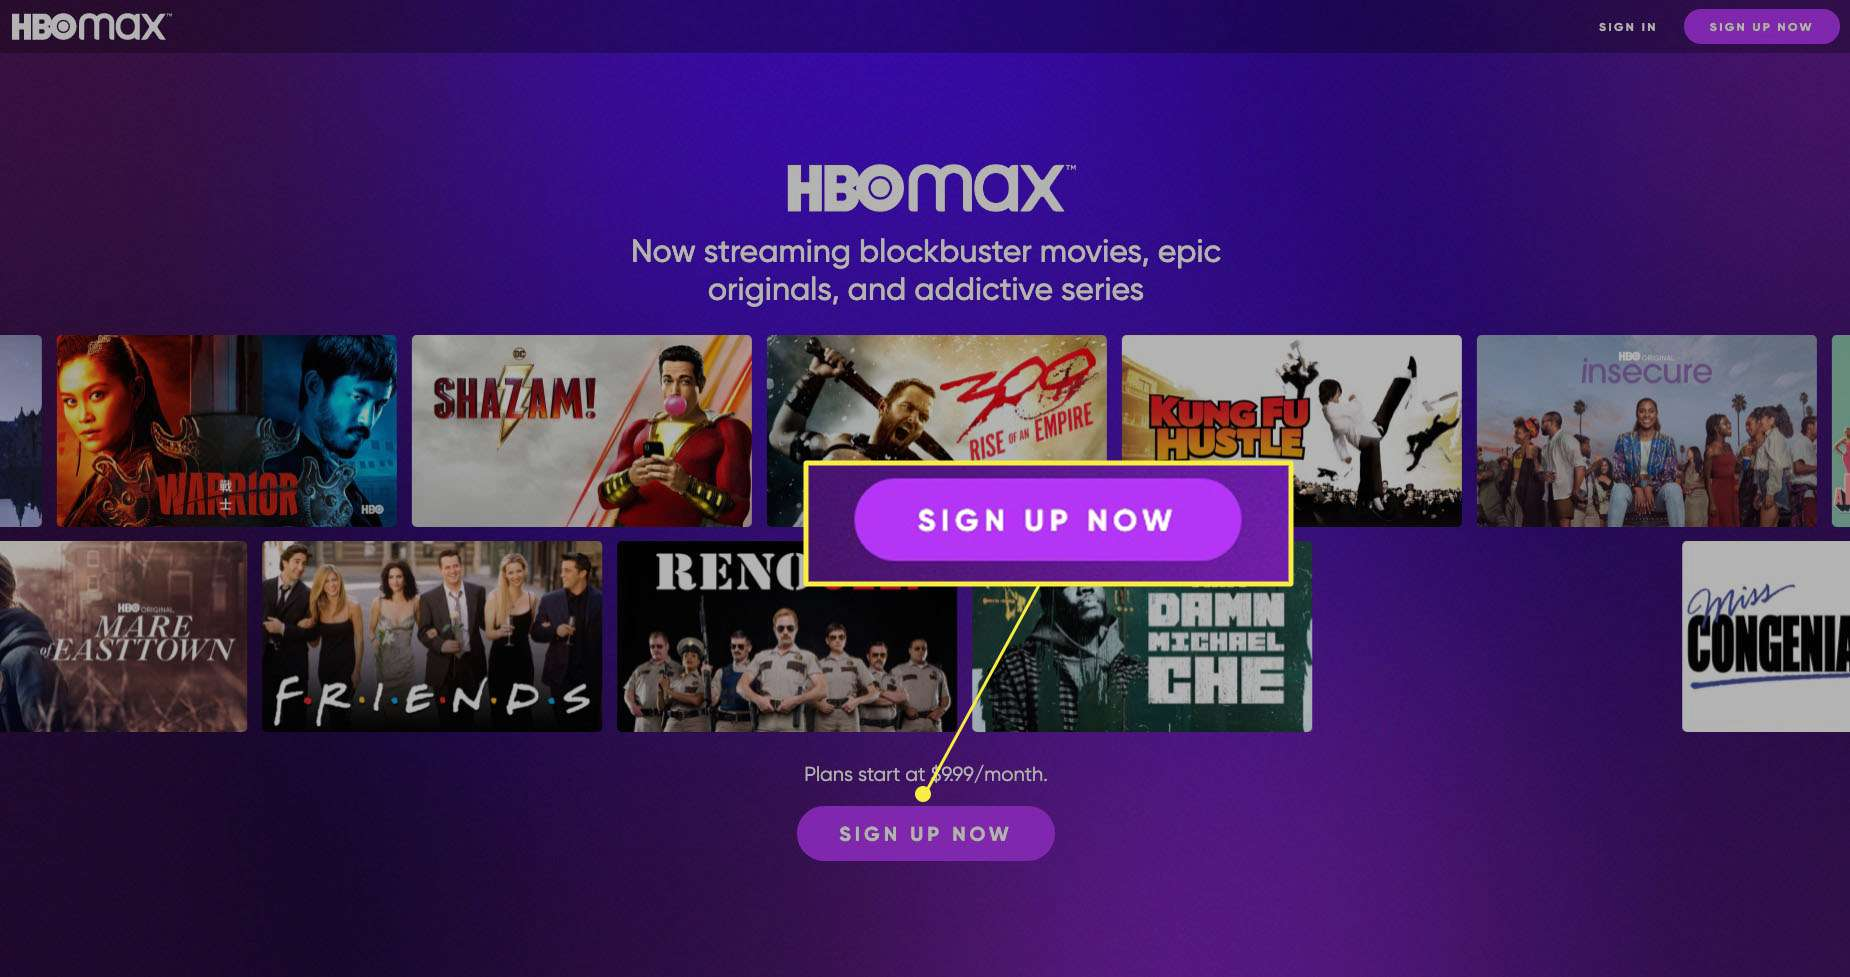 HBO Max login screen with Sign Up Now highlighted